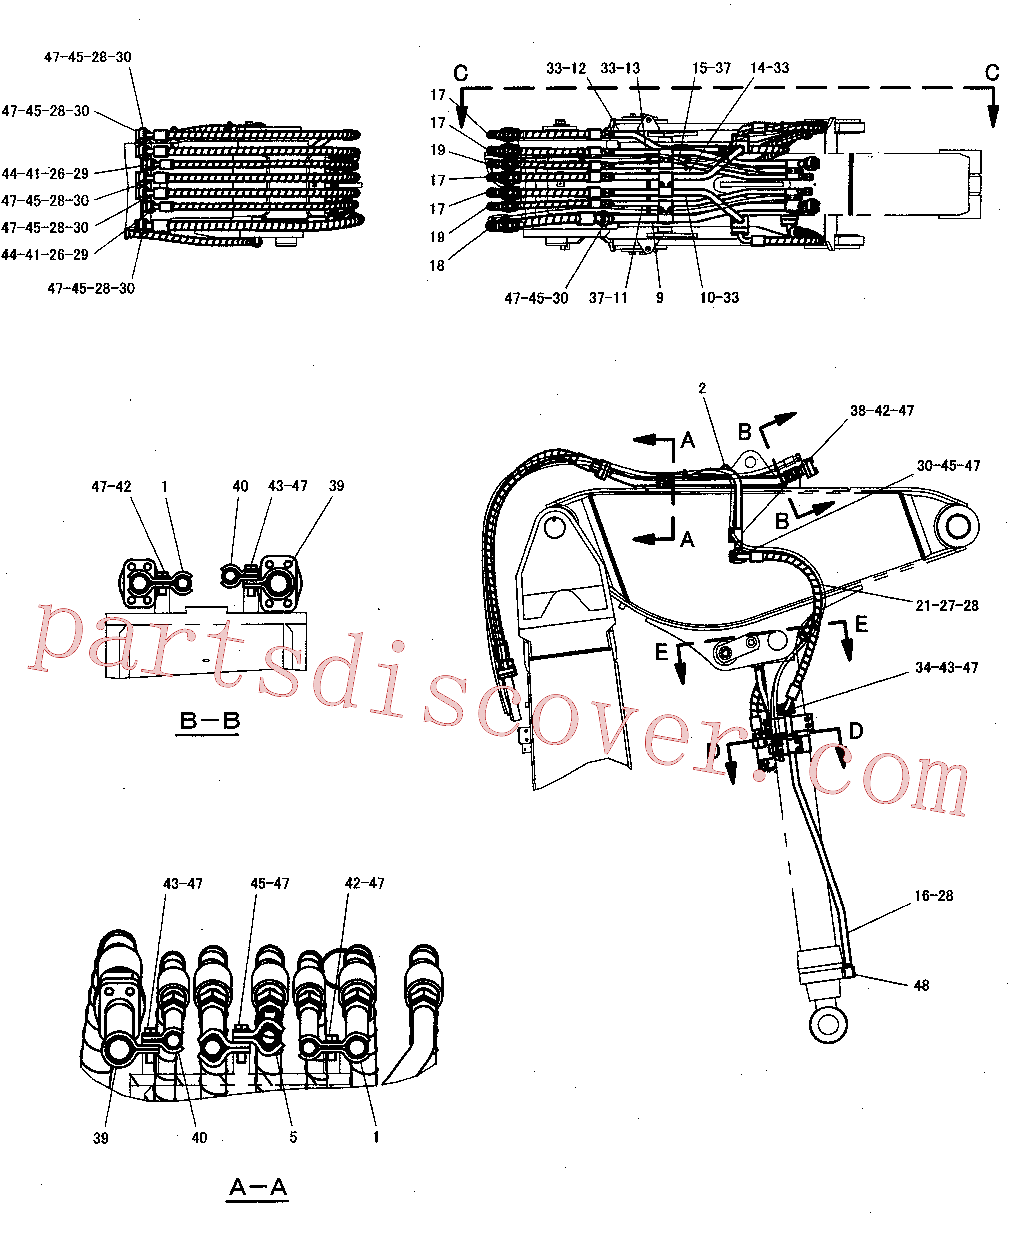 CAT 263-4711 for 345C Excavator(EXC) hydraulic system 300-8170 Assembly